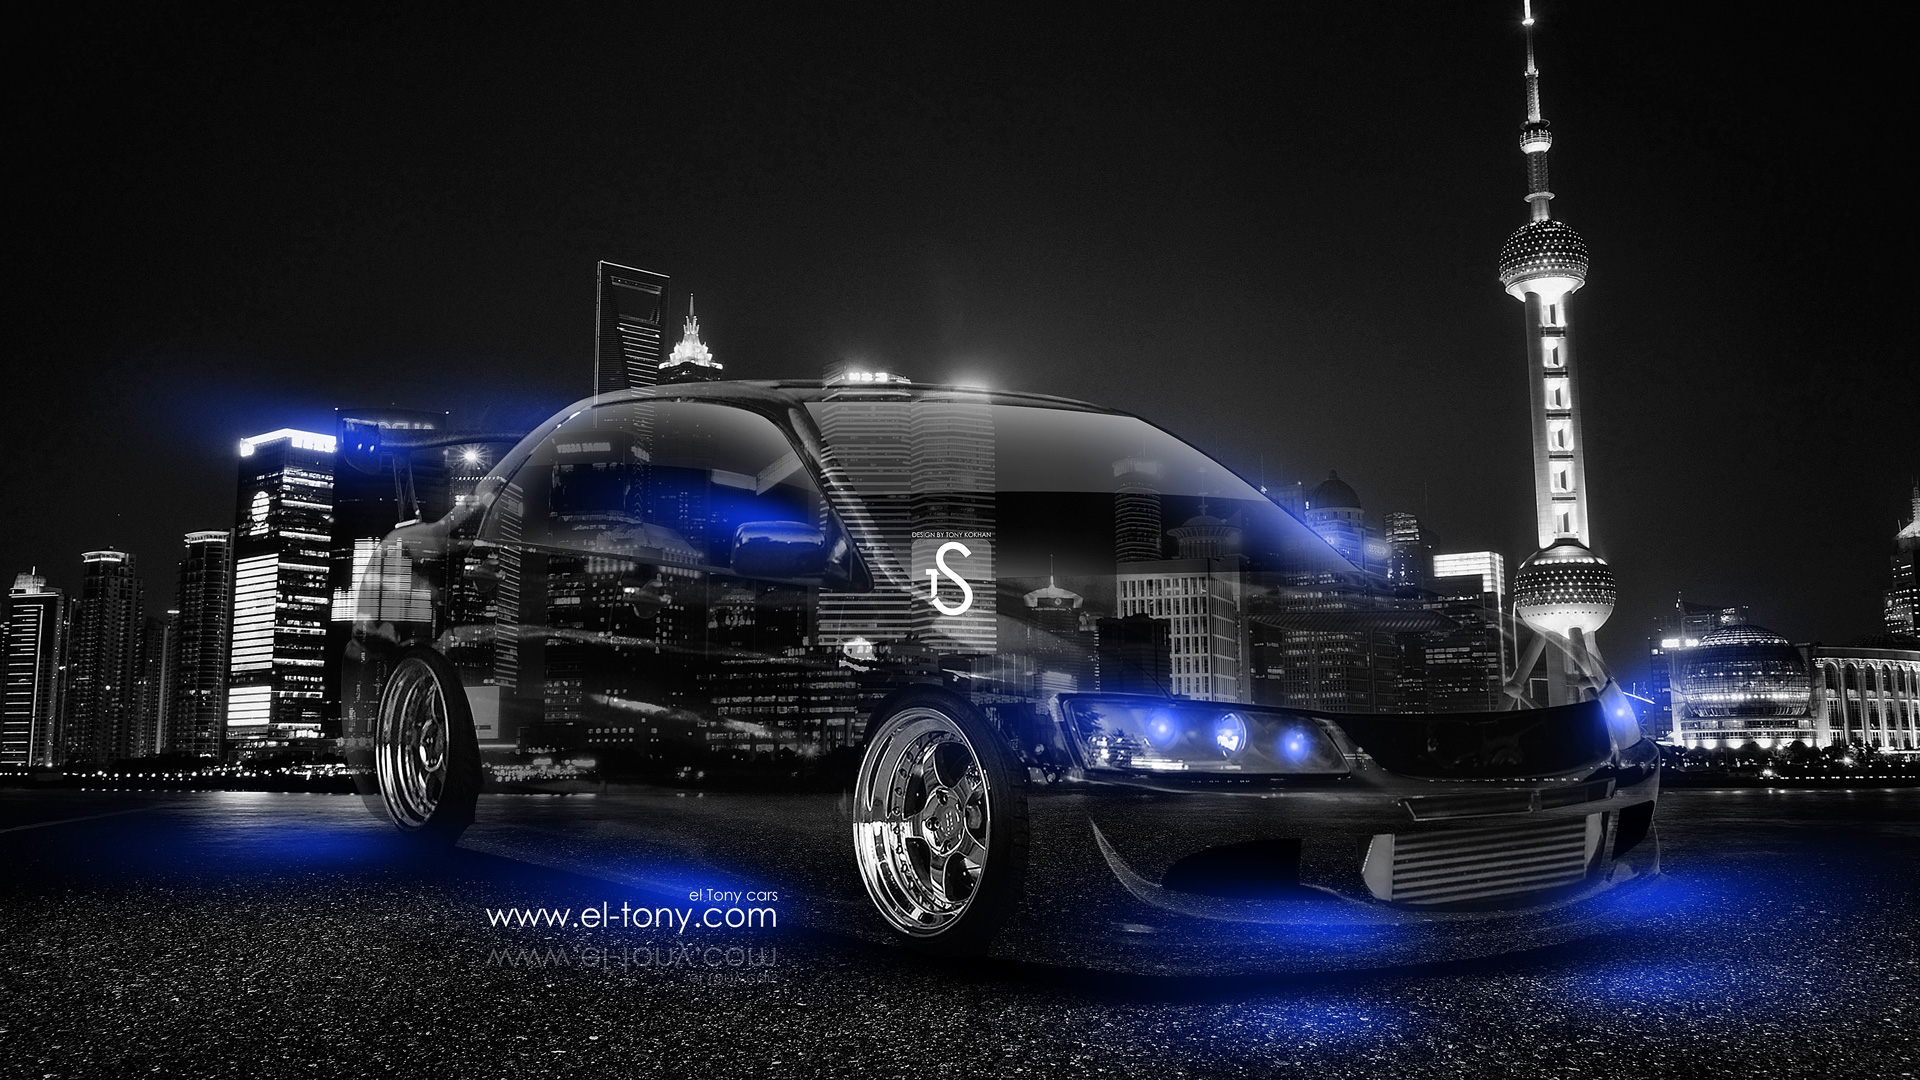 Beau Mitsubishi Lancer Evolution JDM Crystal City Car 2014